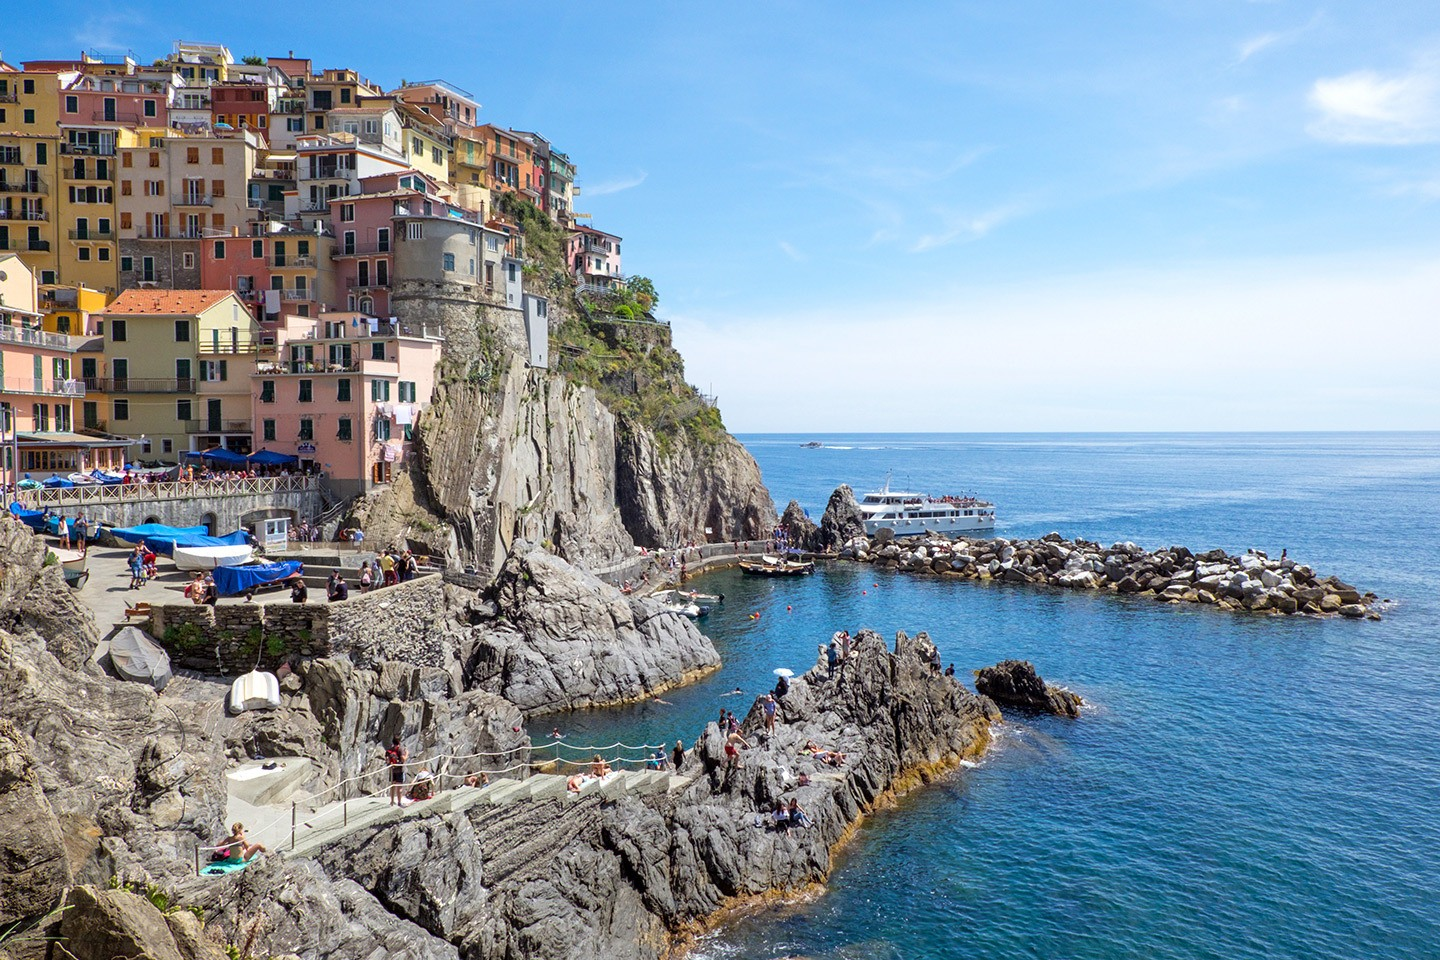 The first-timers guide to visiting the Cinque Terre - Manarola